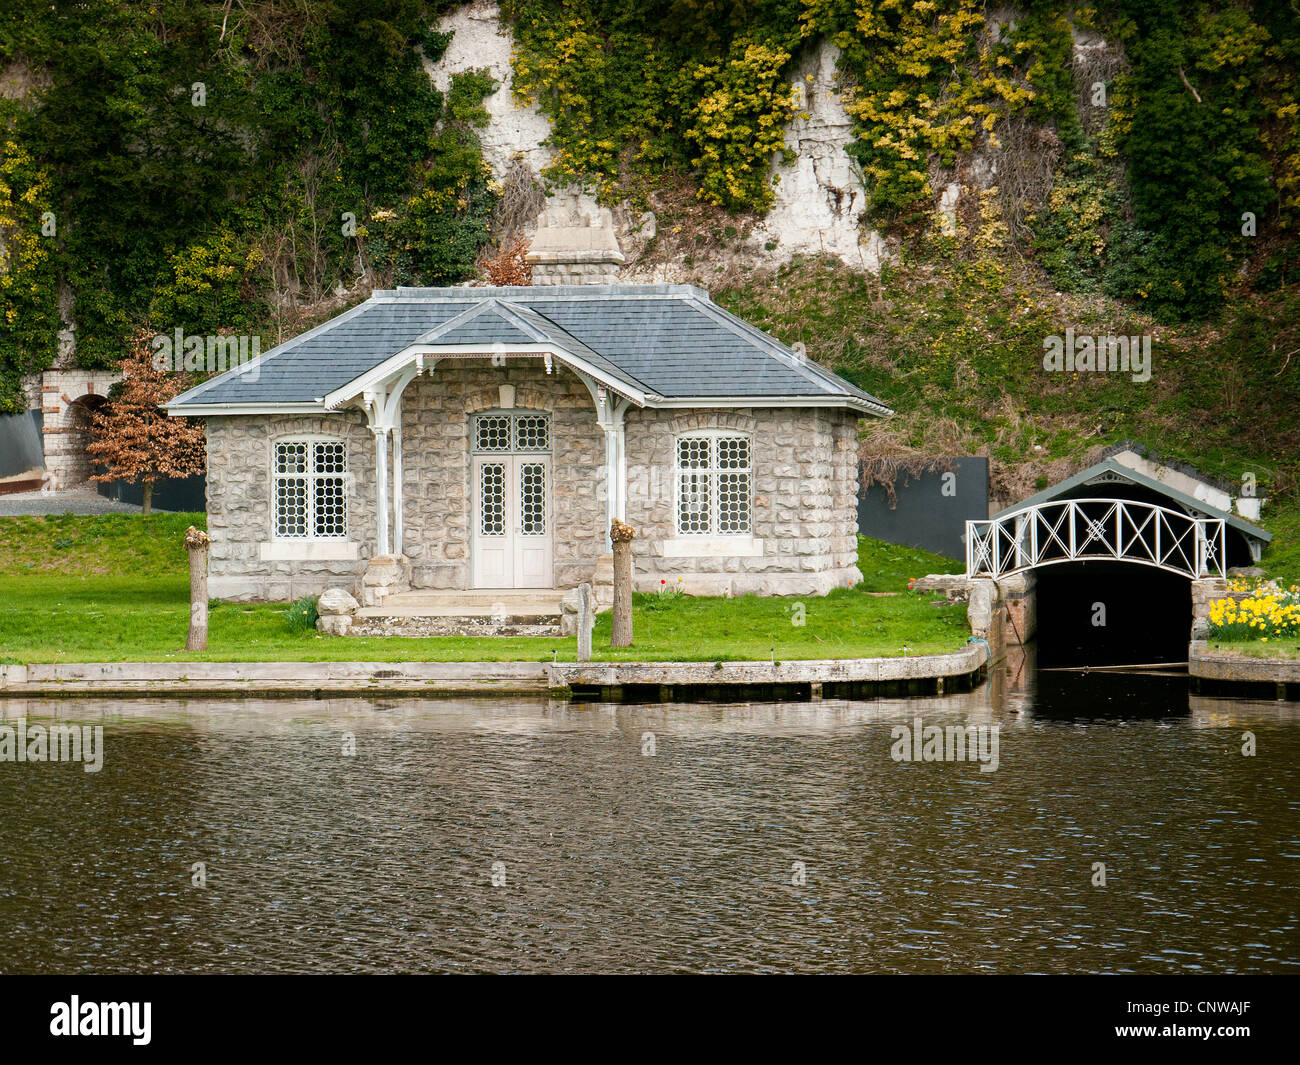 Picturesque stone riverside house on the stone riverside house River Thames, Oxfordshire, UK - Stock Image